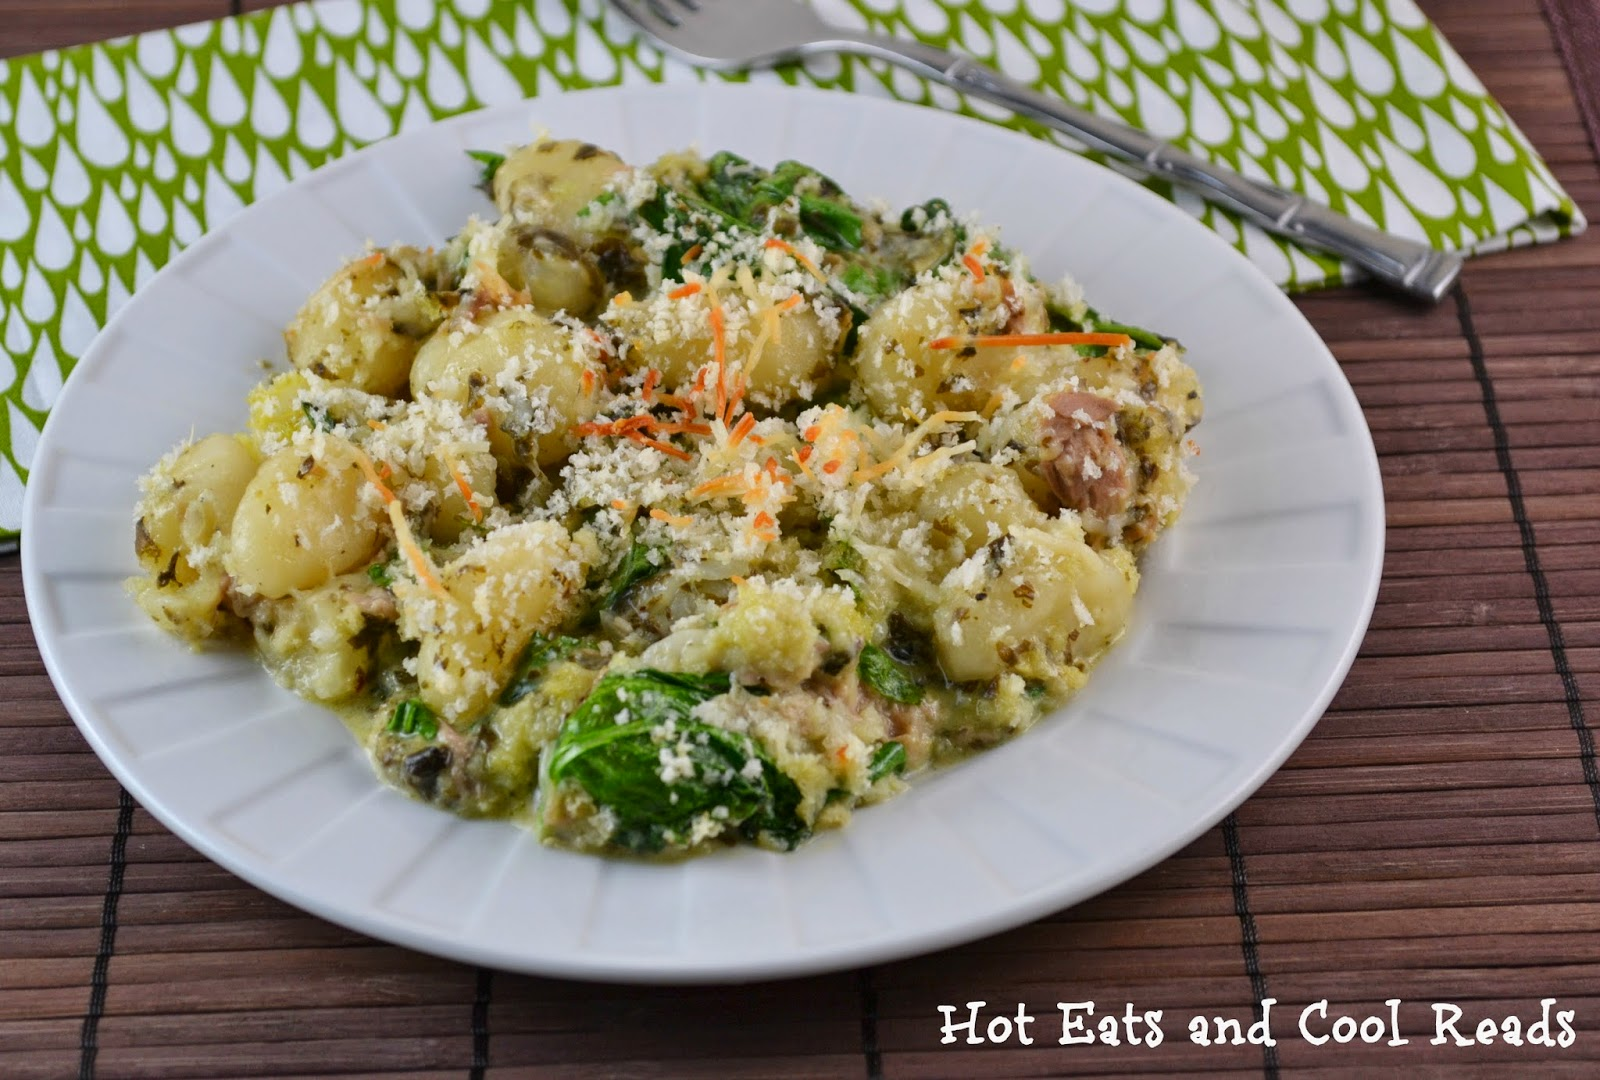 30 minute budget friendly meal! Full of flavor! Baked Pesto Tuna Gnocchi Casserole from Hot Eats and Cool Reads!